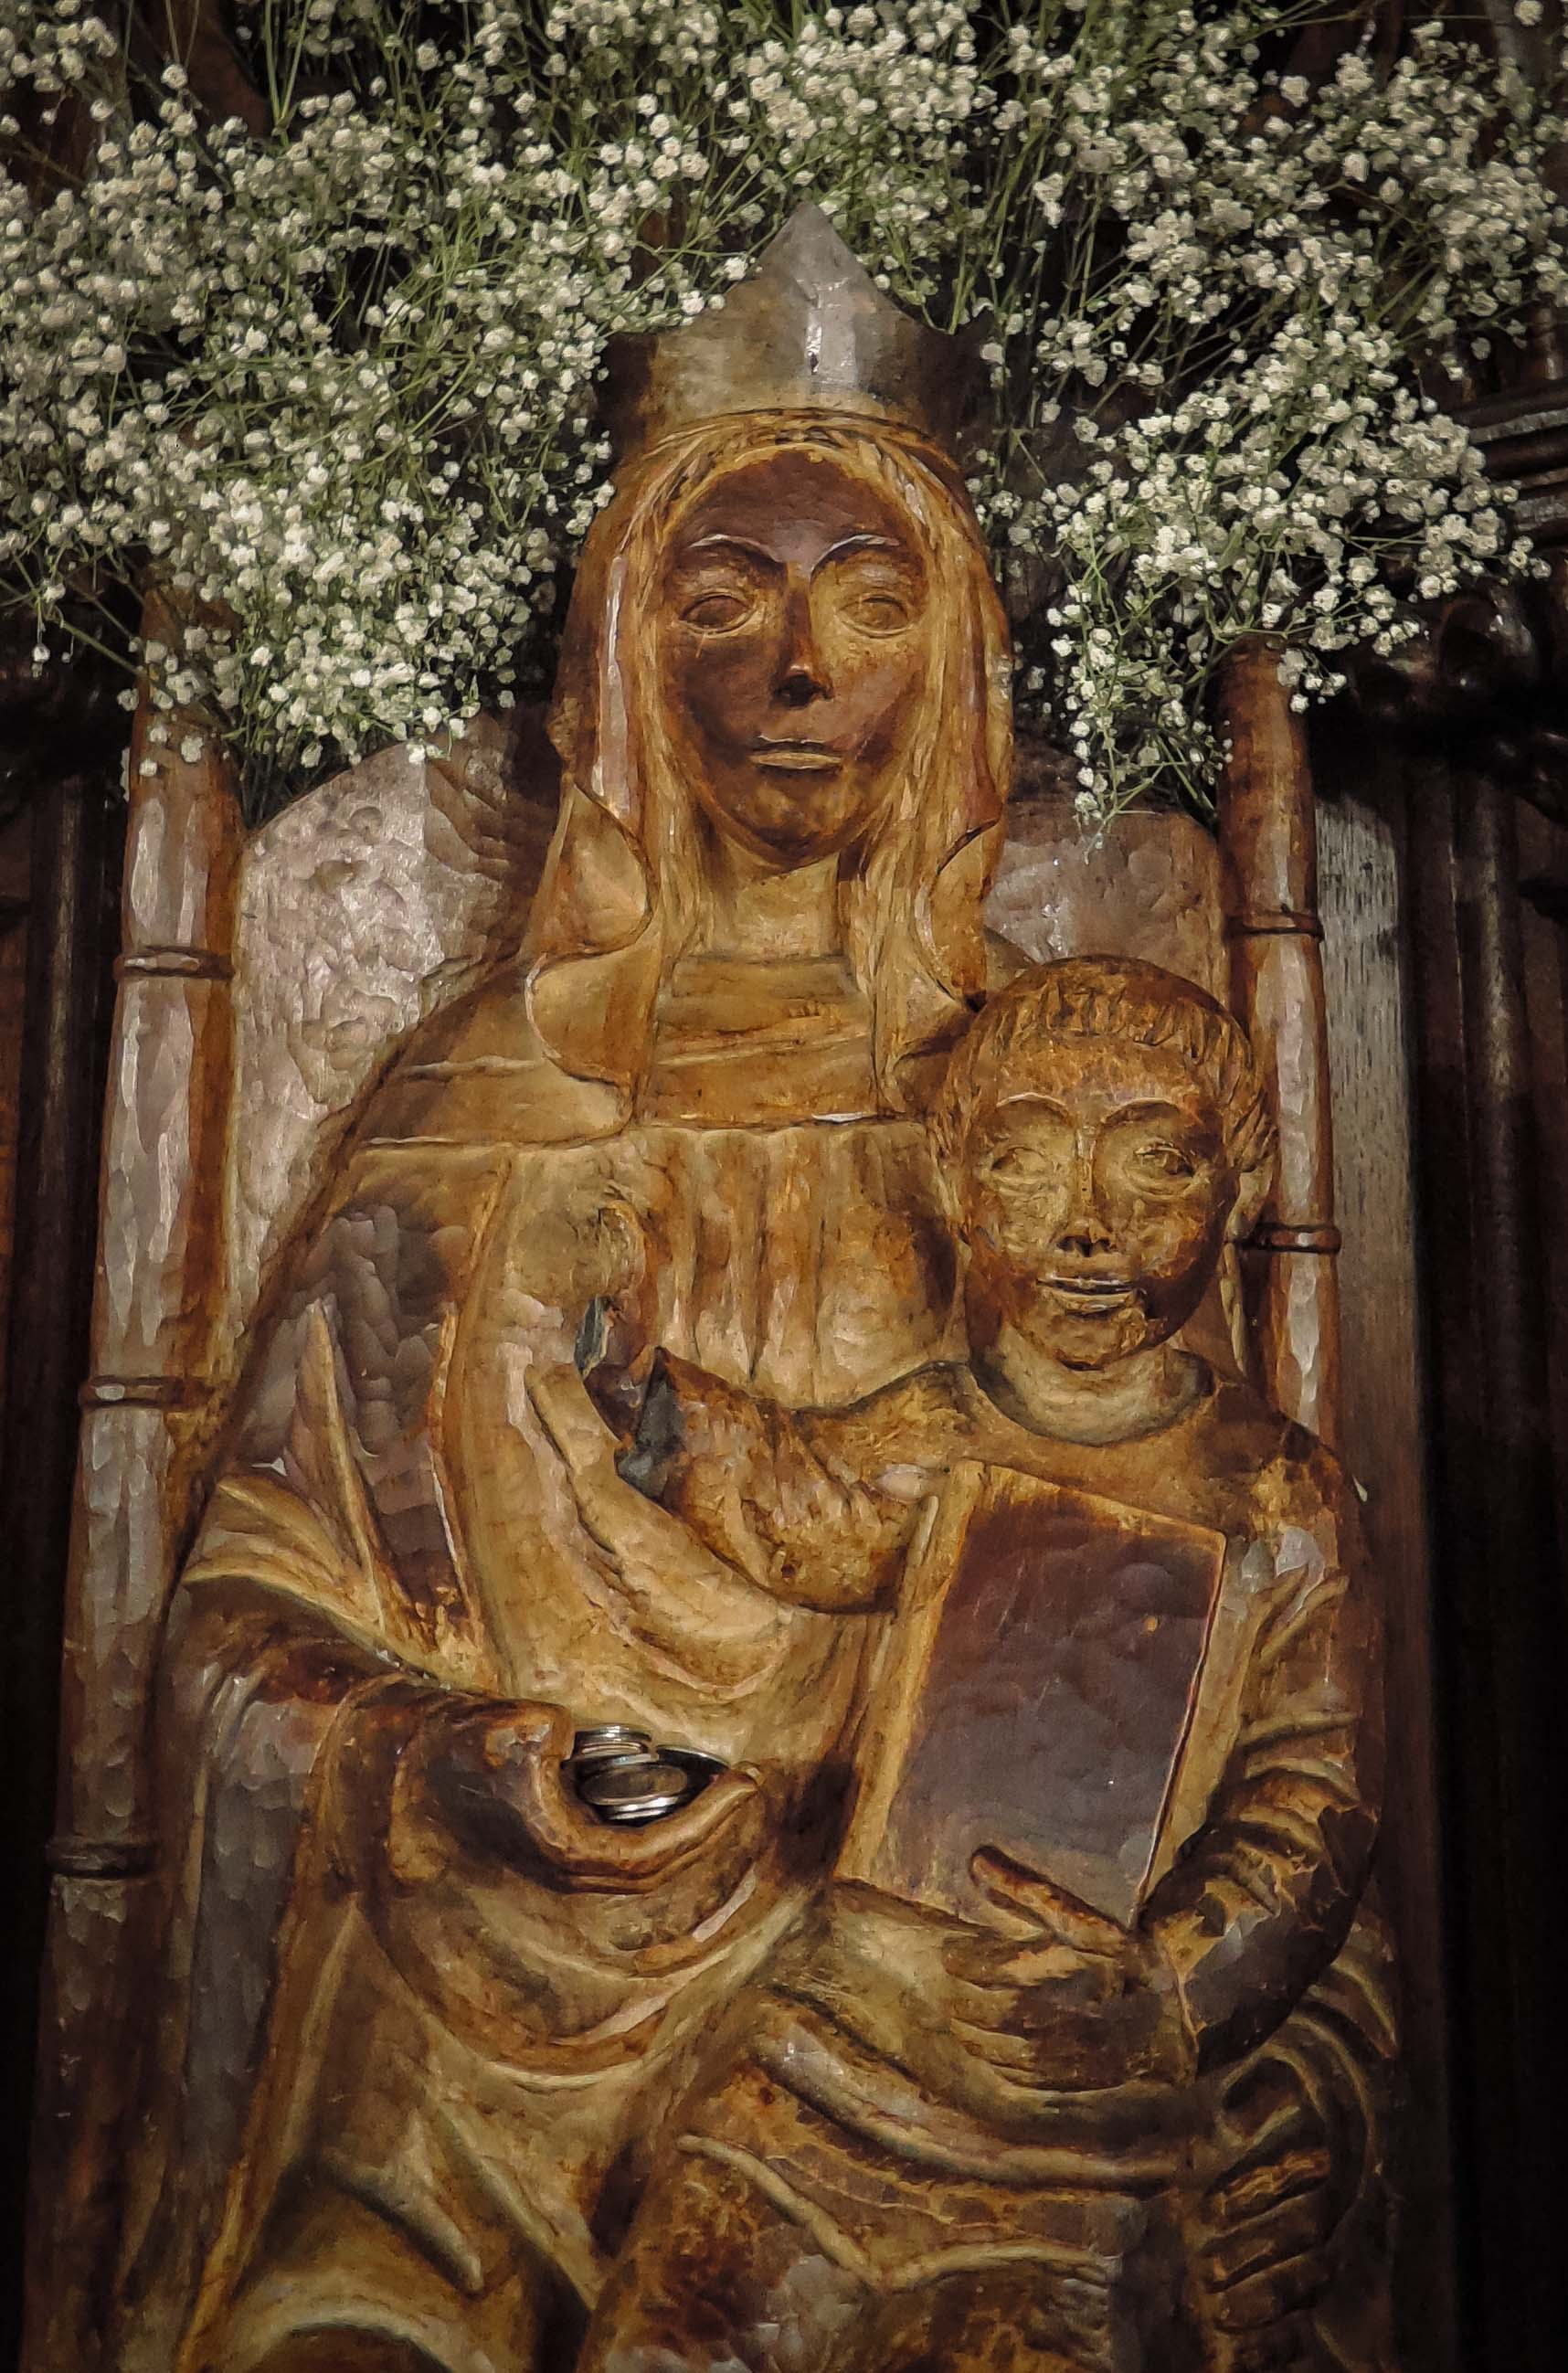 Statue of Our Lady of Walsingham in the Lady Chapel